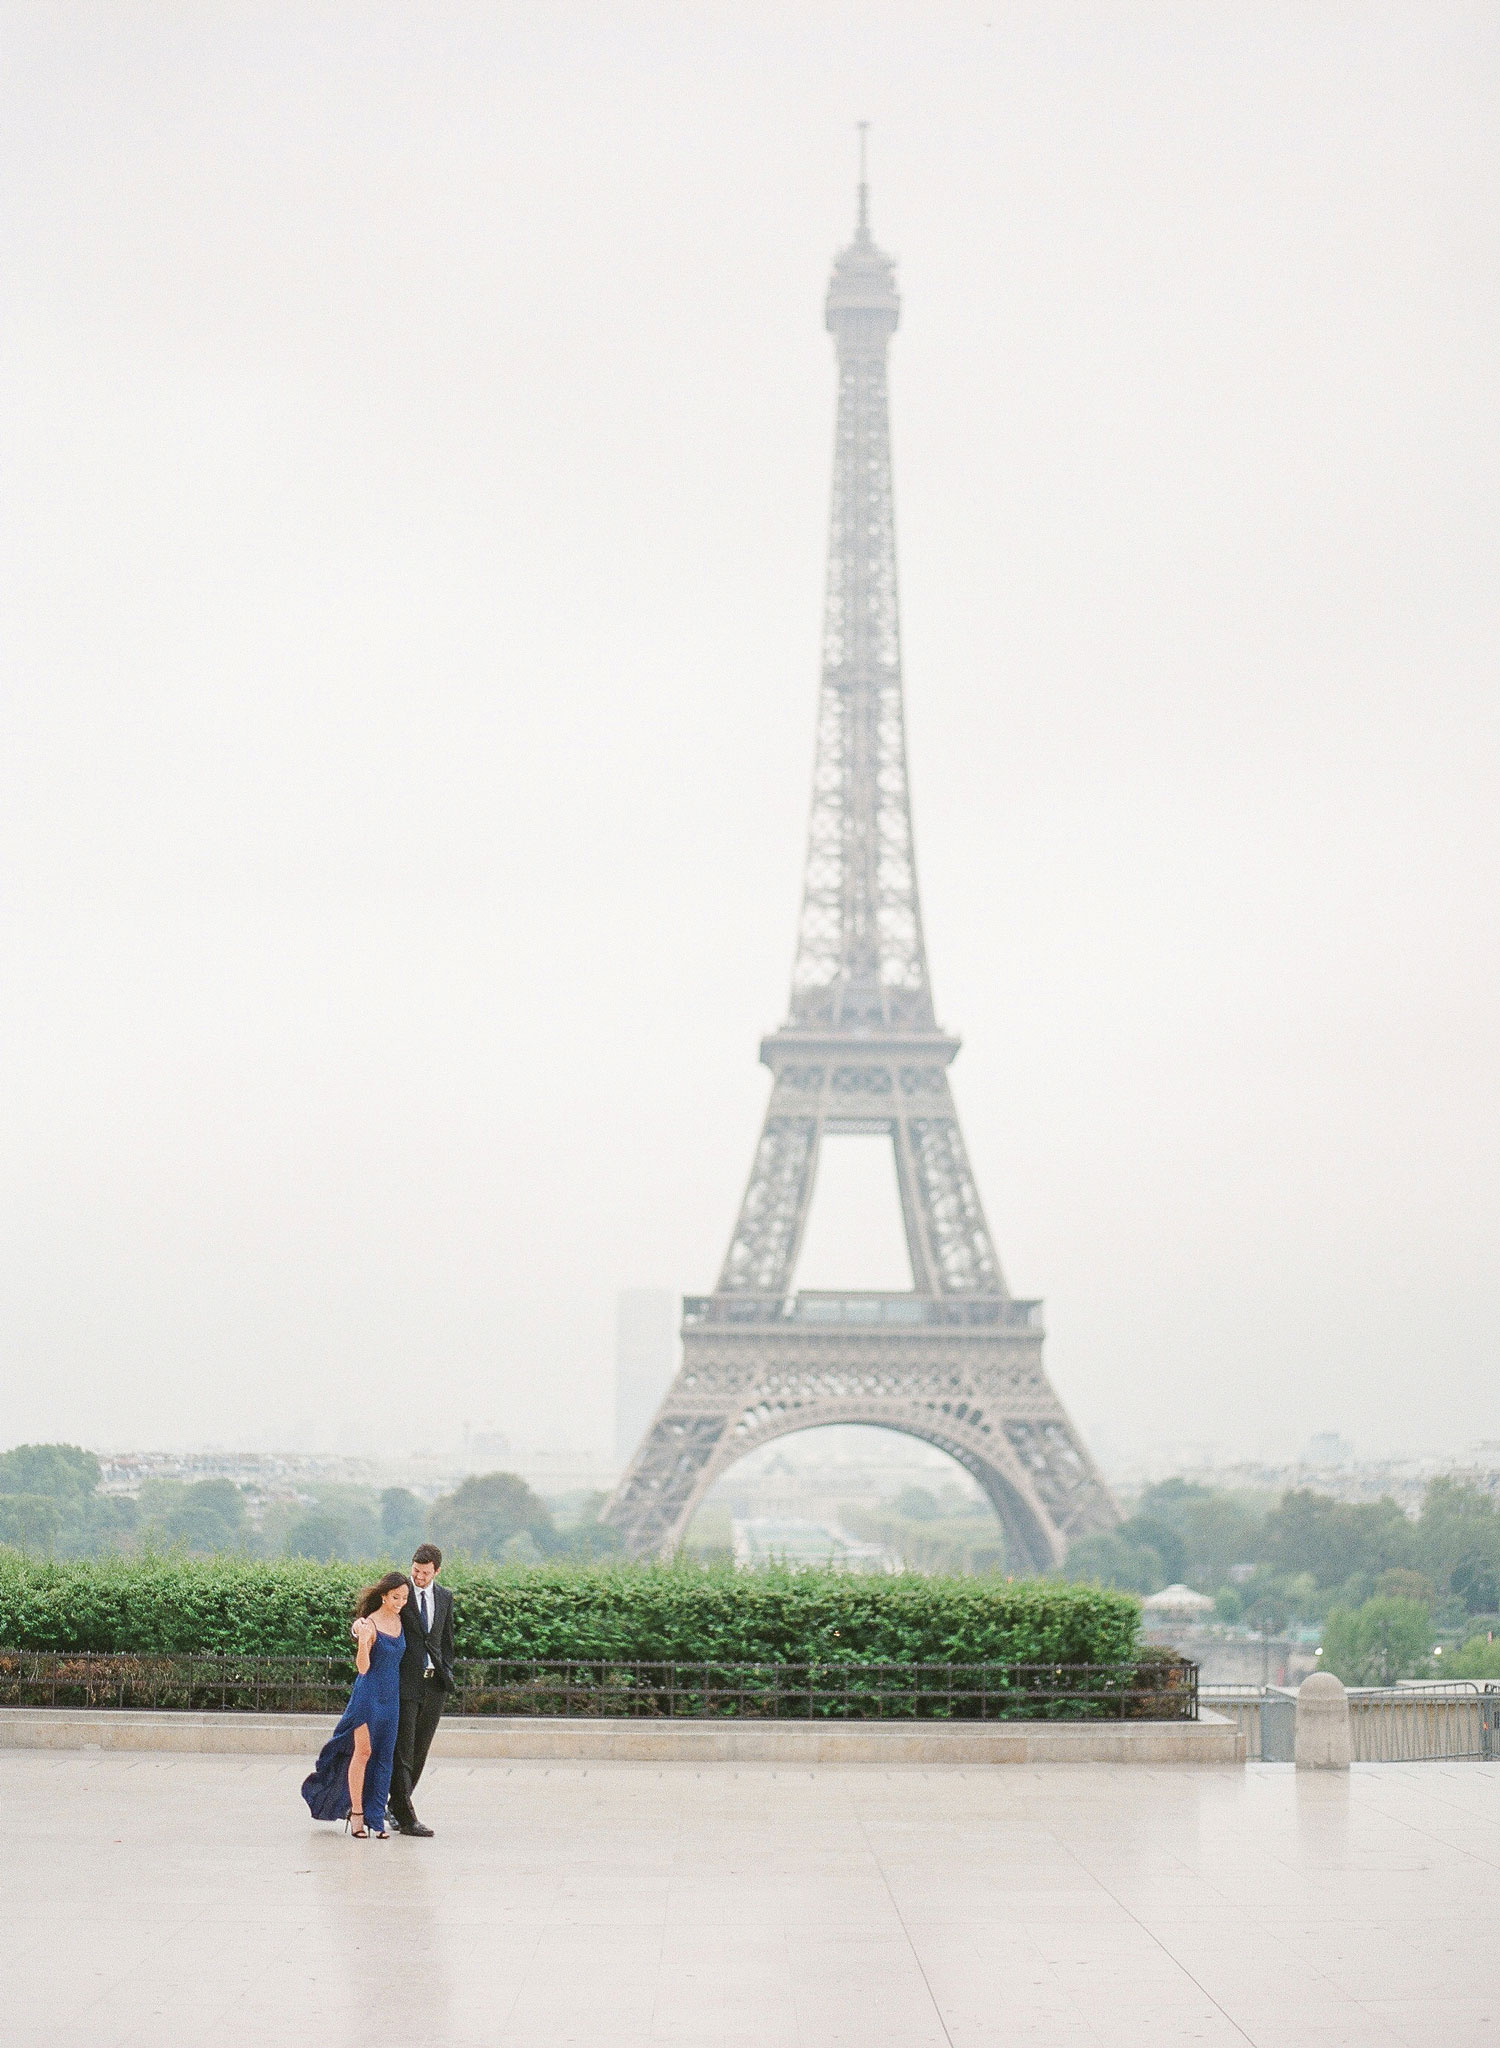 wedding photo engagement photo shoot in paris eiffel tower wedding trends ideas